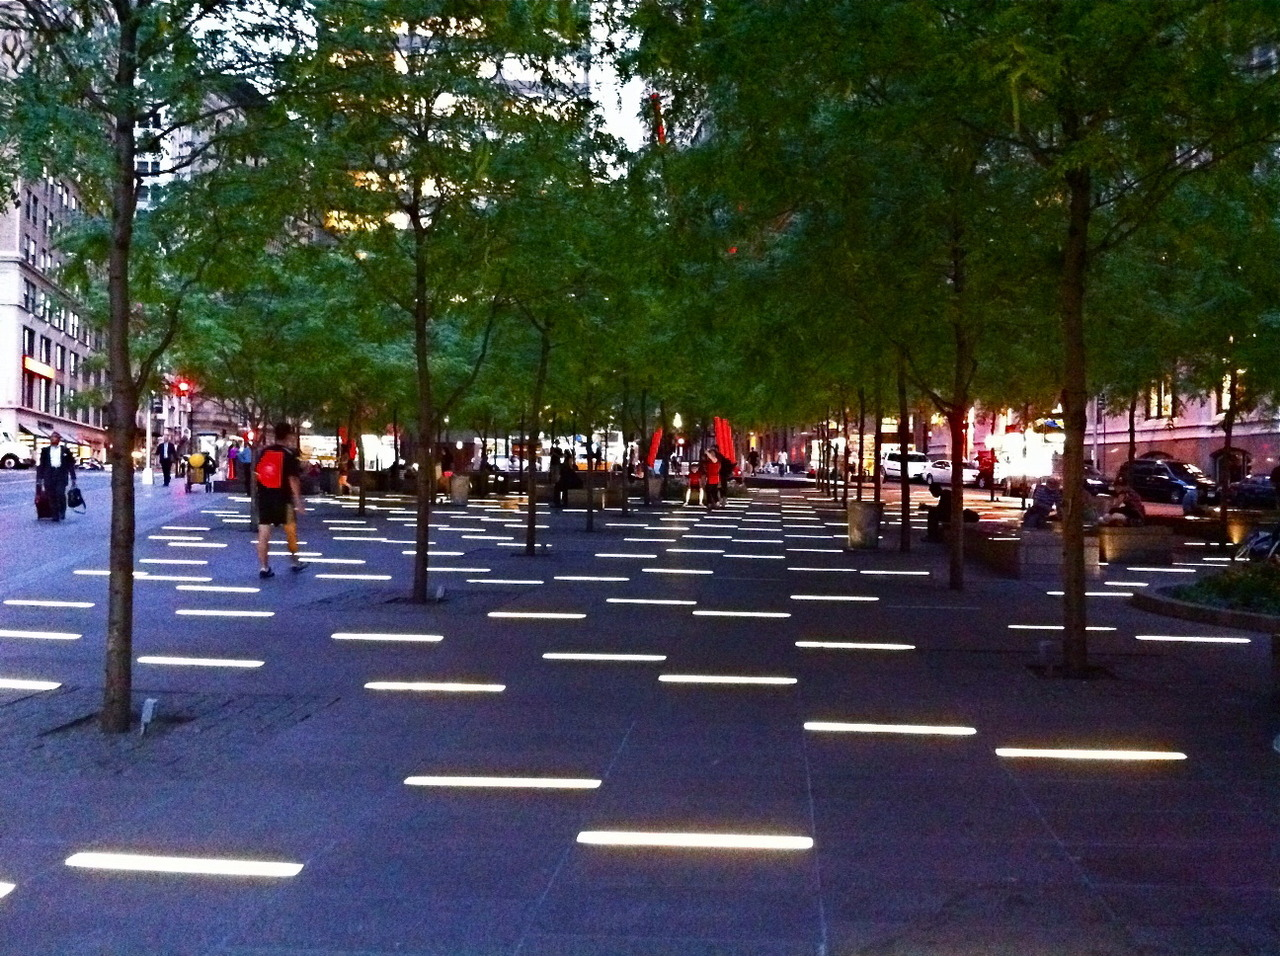 "An occupier participates in a little-known action in Zuccotti Park in the wee hours of the morning, drawing the blueprints of the #OWS encampment in chalk:  ""From this angle all I can see are his boots, more particularly the black military boot, buckled in silver that is blocking my ability to finish my chalk drawing. It is three in the morning and I am about to be arrested. I am using chalk to draw out the blueprints of where the tents had been prior to the dismantling of the Occupy Wall Street encampment by the NYPD in Zuccotti Park."""